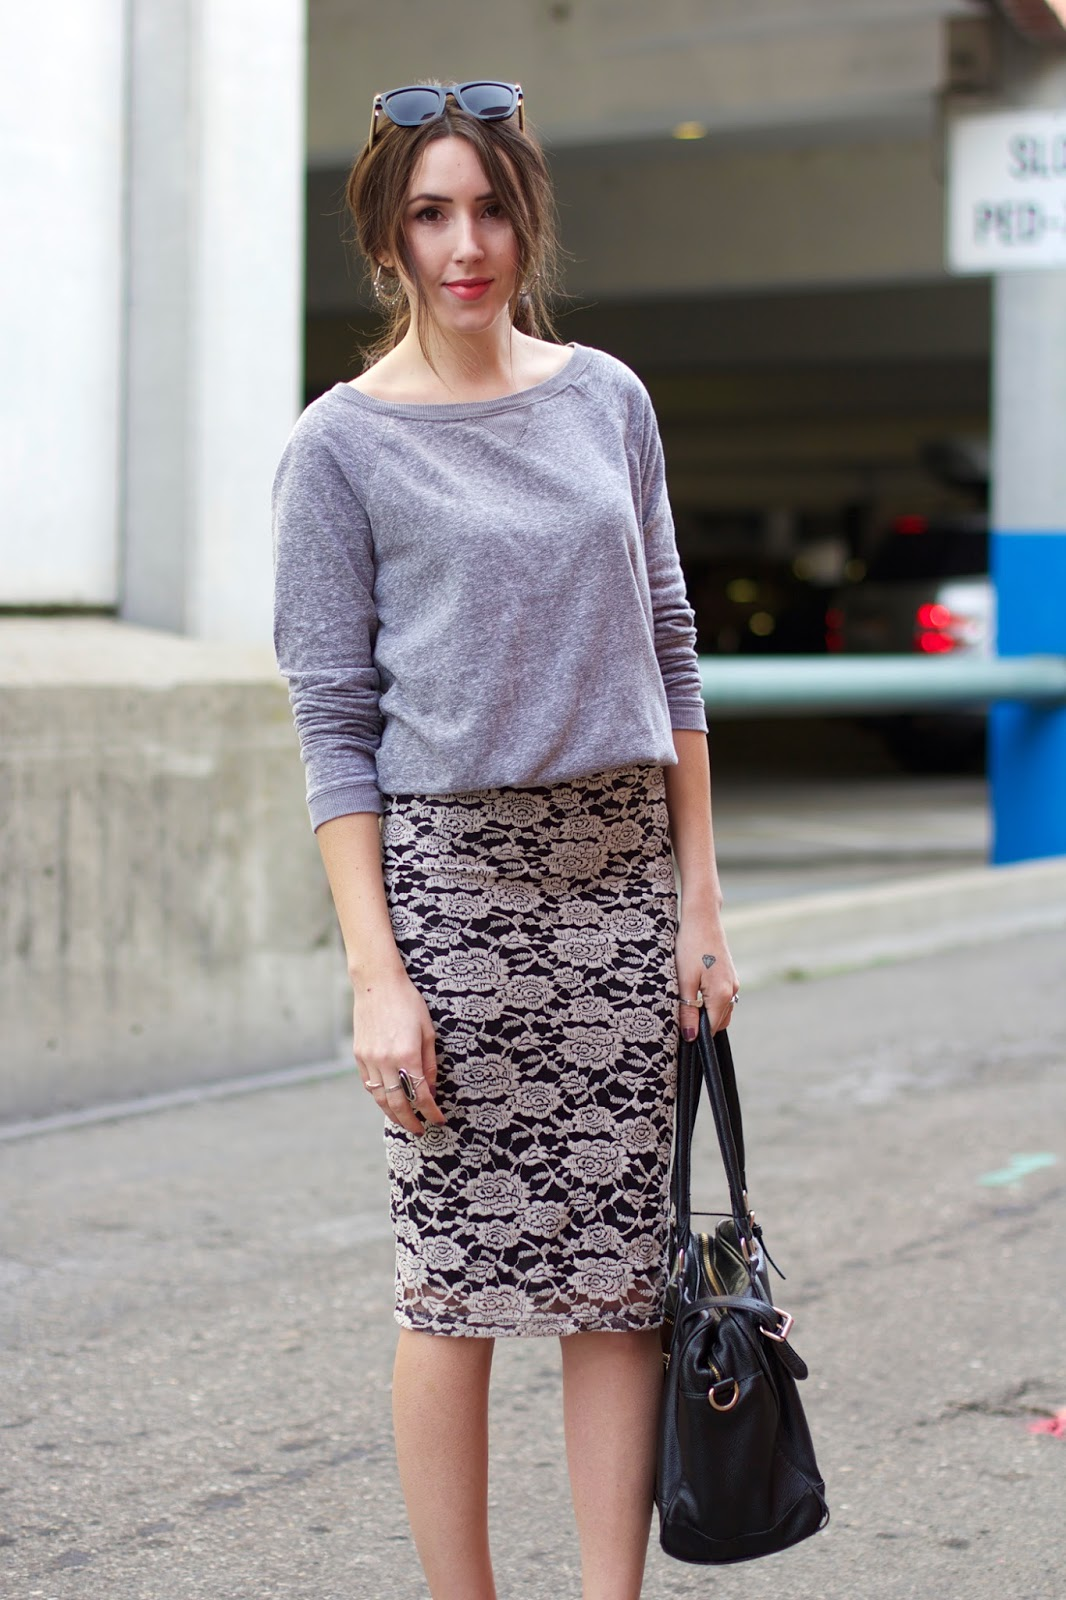 lace-skirt-street-style